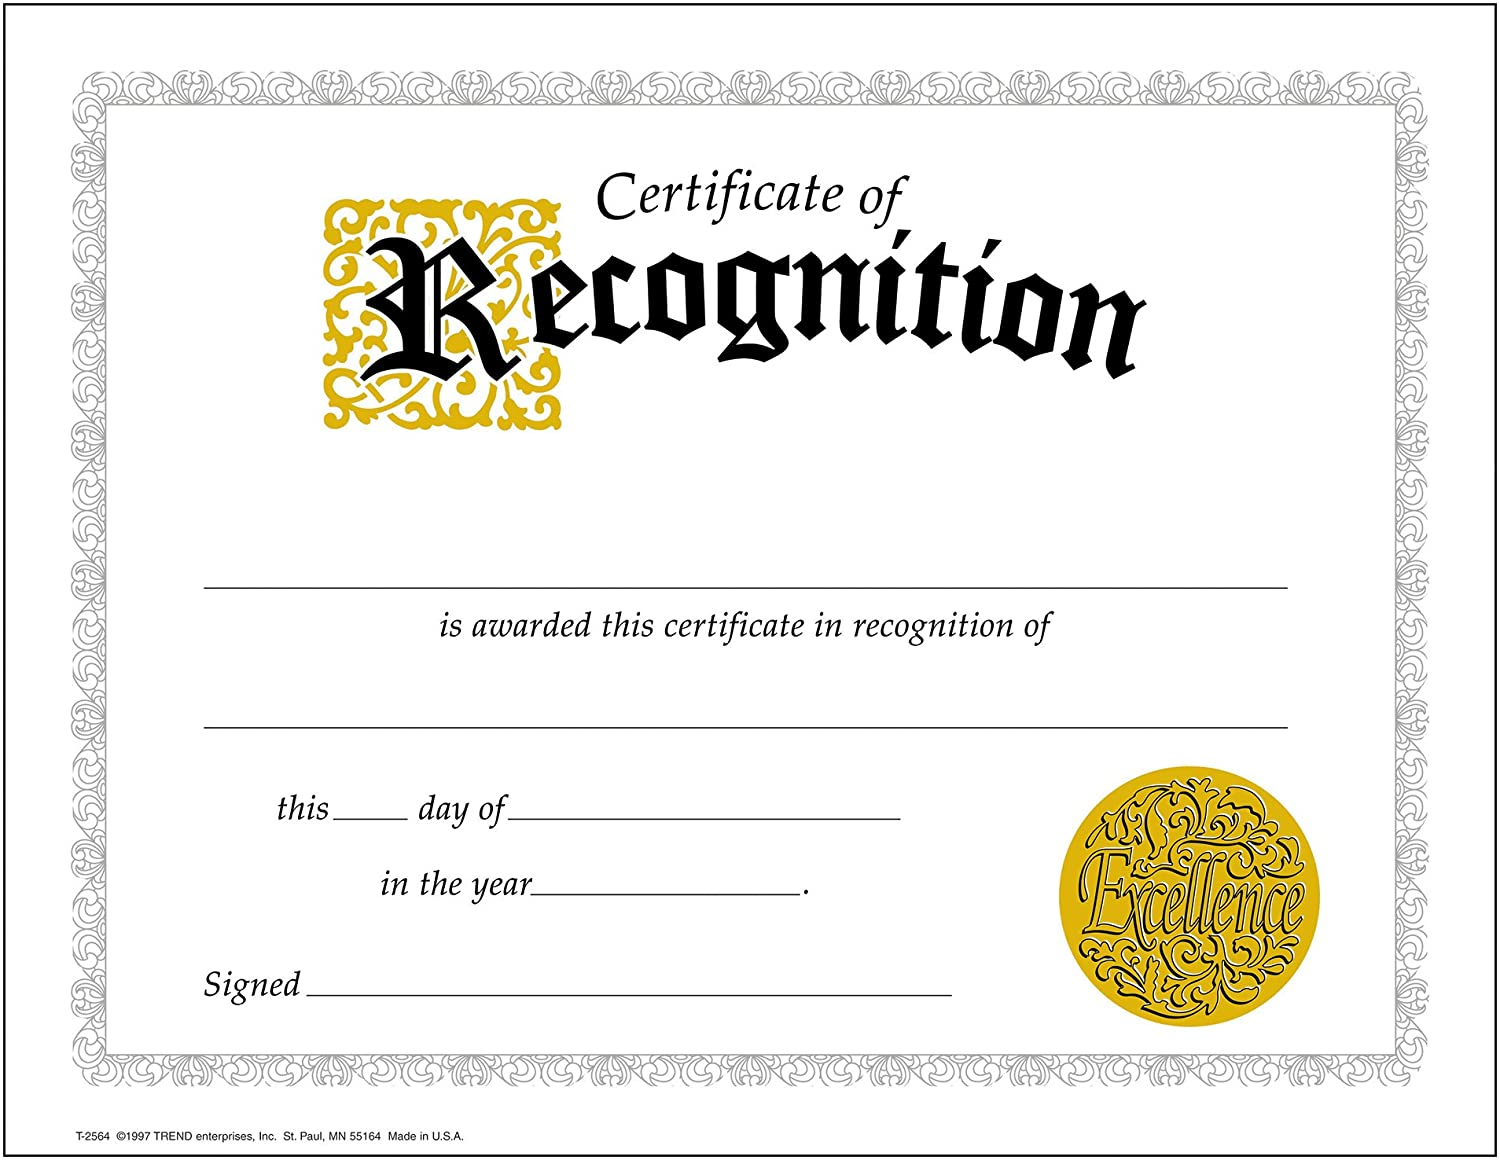 Amazon.com : Certificate of Recognition (Large) - 30 pack : Academic Awards And Incentives Supplies : Office Products